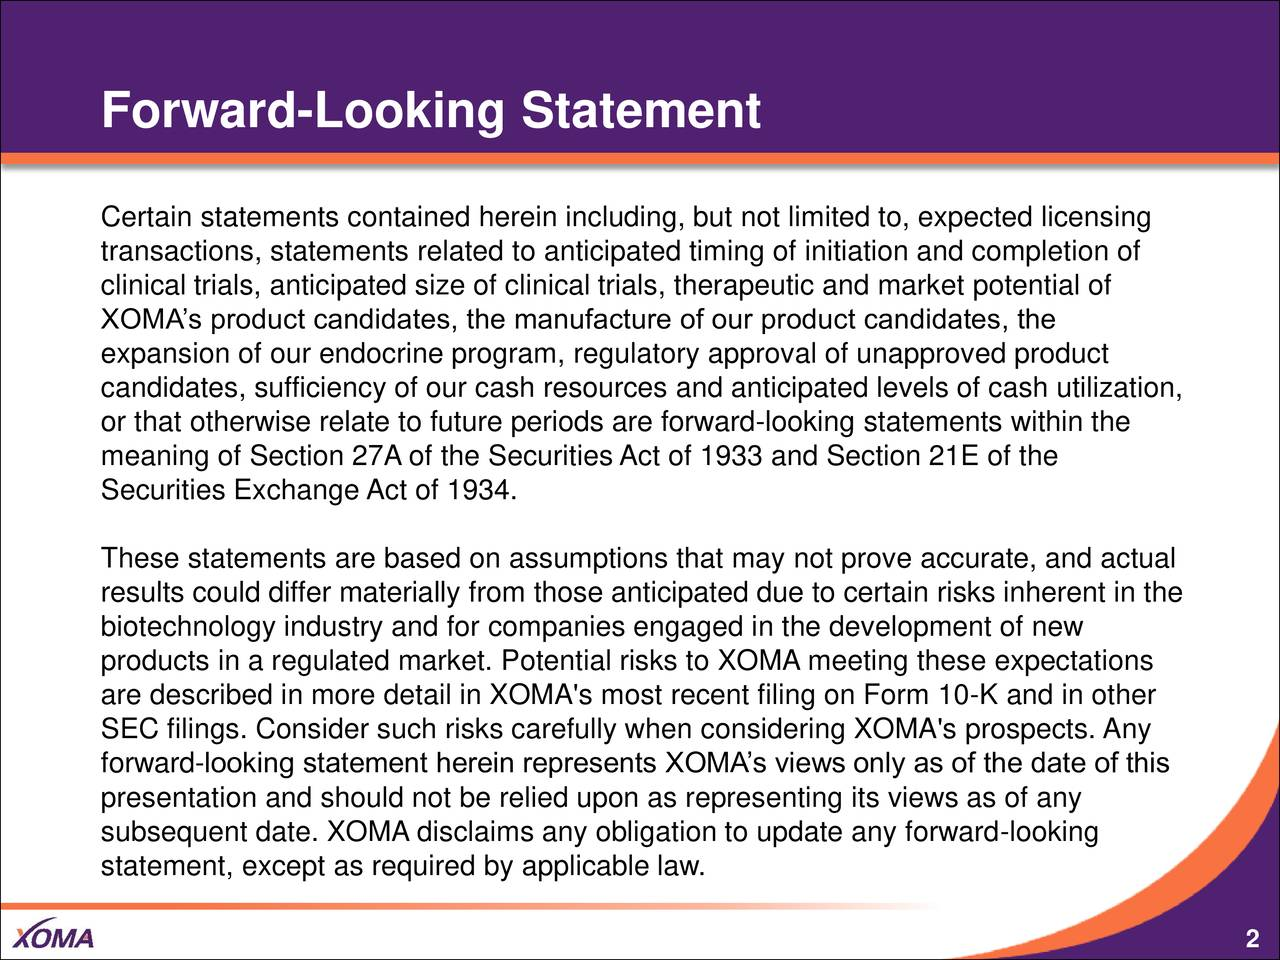 Certain statements contained herein including, but not limited to, expected licensing transactions, statements related to anticipated timing of initiation and completion of clinical trials, anticipated size of clinical trials, therapeutic and market potential of XOMAs product candidates, the manufacture of our product candidates, the expansion of our endocrine program, regulatory approval of unapproved product candidates, sufficiency of our cash resources and anticipated levels of cash utilization, or that otherwise relate to future periods are forward-looking statements within the meaning of Section 27A of the Securities Act of 1933 and Section 21E of the Securities Exchange Act of 1934. These statements are based on assumptions that may not prove accurate, and actual results could differ materially from those anticipated due to certain risks inherent in the biotechnology industry and for companies engaged in the development of new products in a regulated market. Potential risks to XOMA meeting these expectations are described in more detail in XOMA's most recent filing on Form 10-K and in other SEC filings. Consider such risks carefully when considering XOMA's prospects. Any forward-looking statement herein represents XOMAs views only as of the date of this presentation and should not be relied upon as representing its views as of any subsequent date. XOMA disclaims any obligation to update any forward-looking statement, except as required by applicable law.